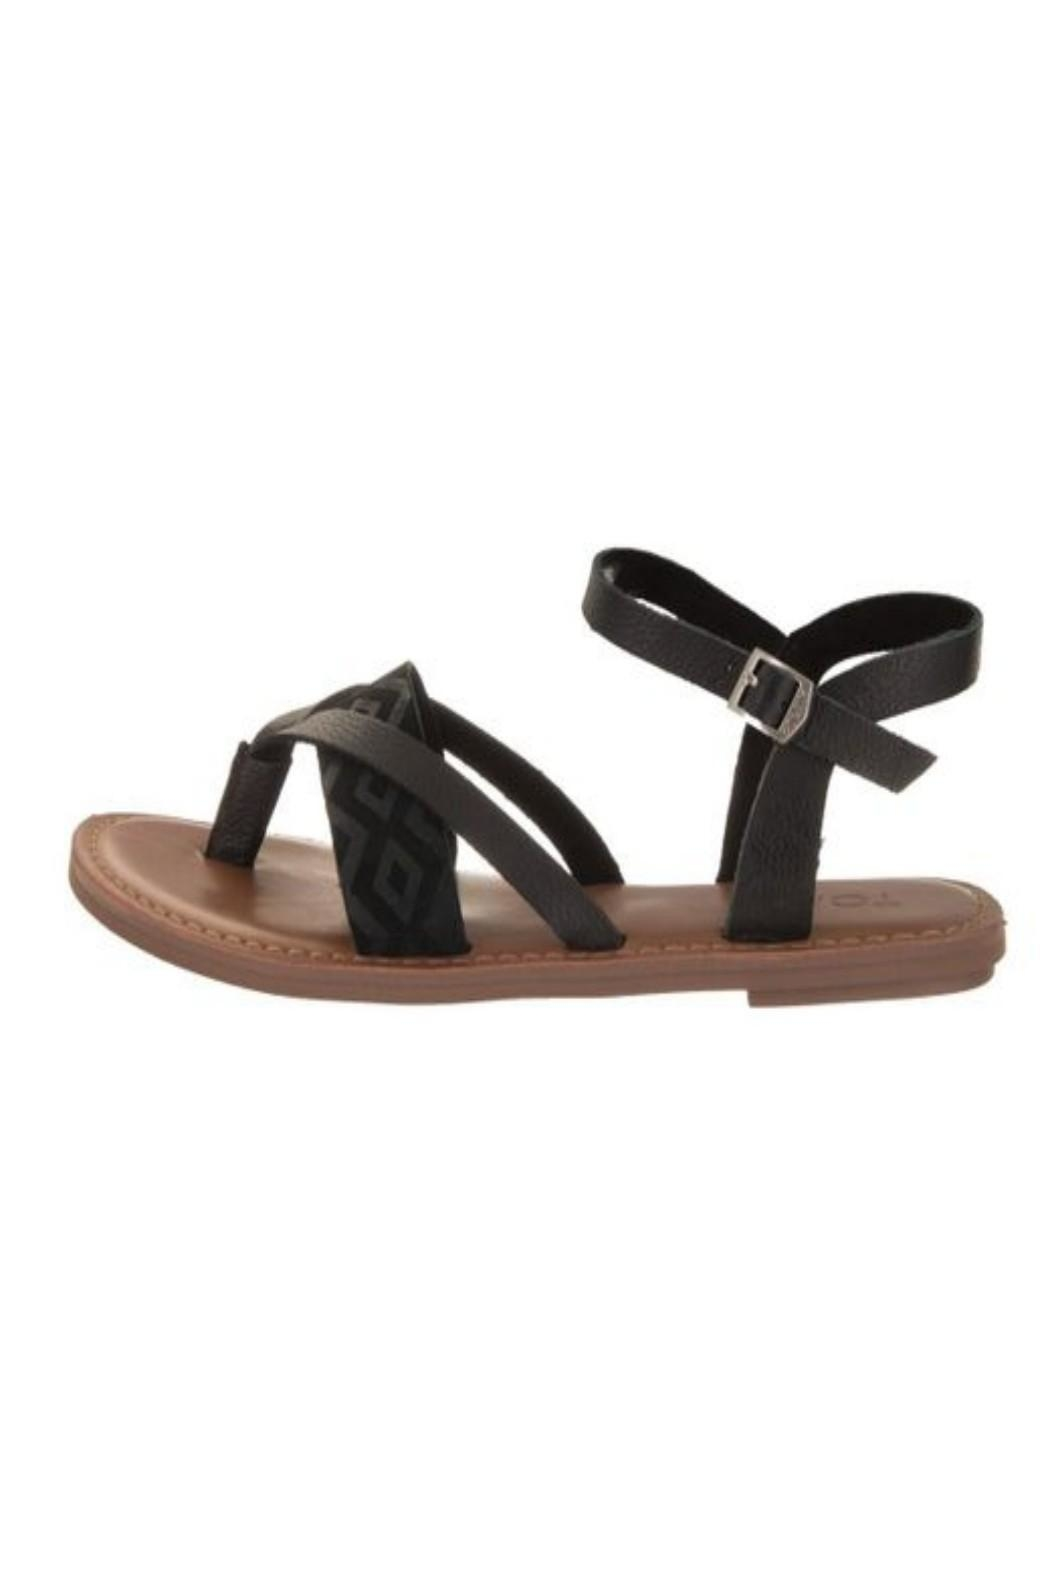 20ed82eec35 TOMS Lexie Sandal Black from Tennessee by Bloem Kind Boutique ...